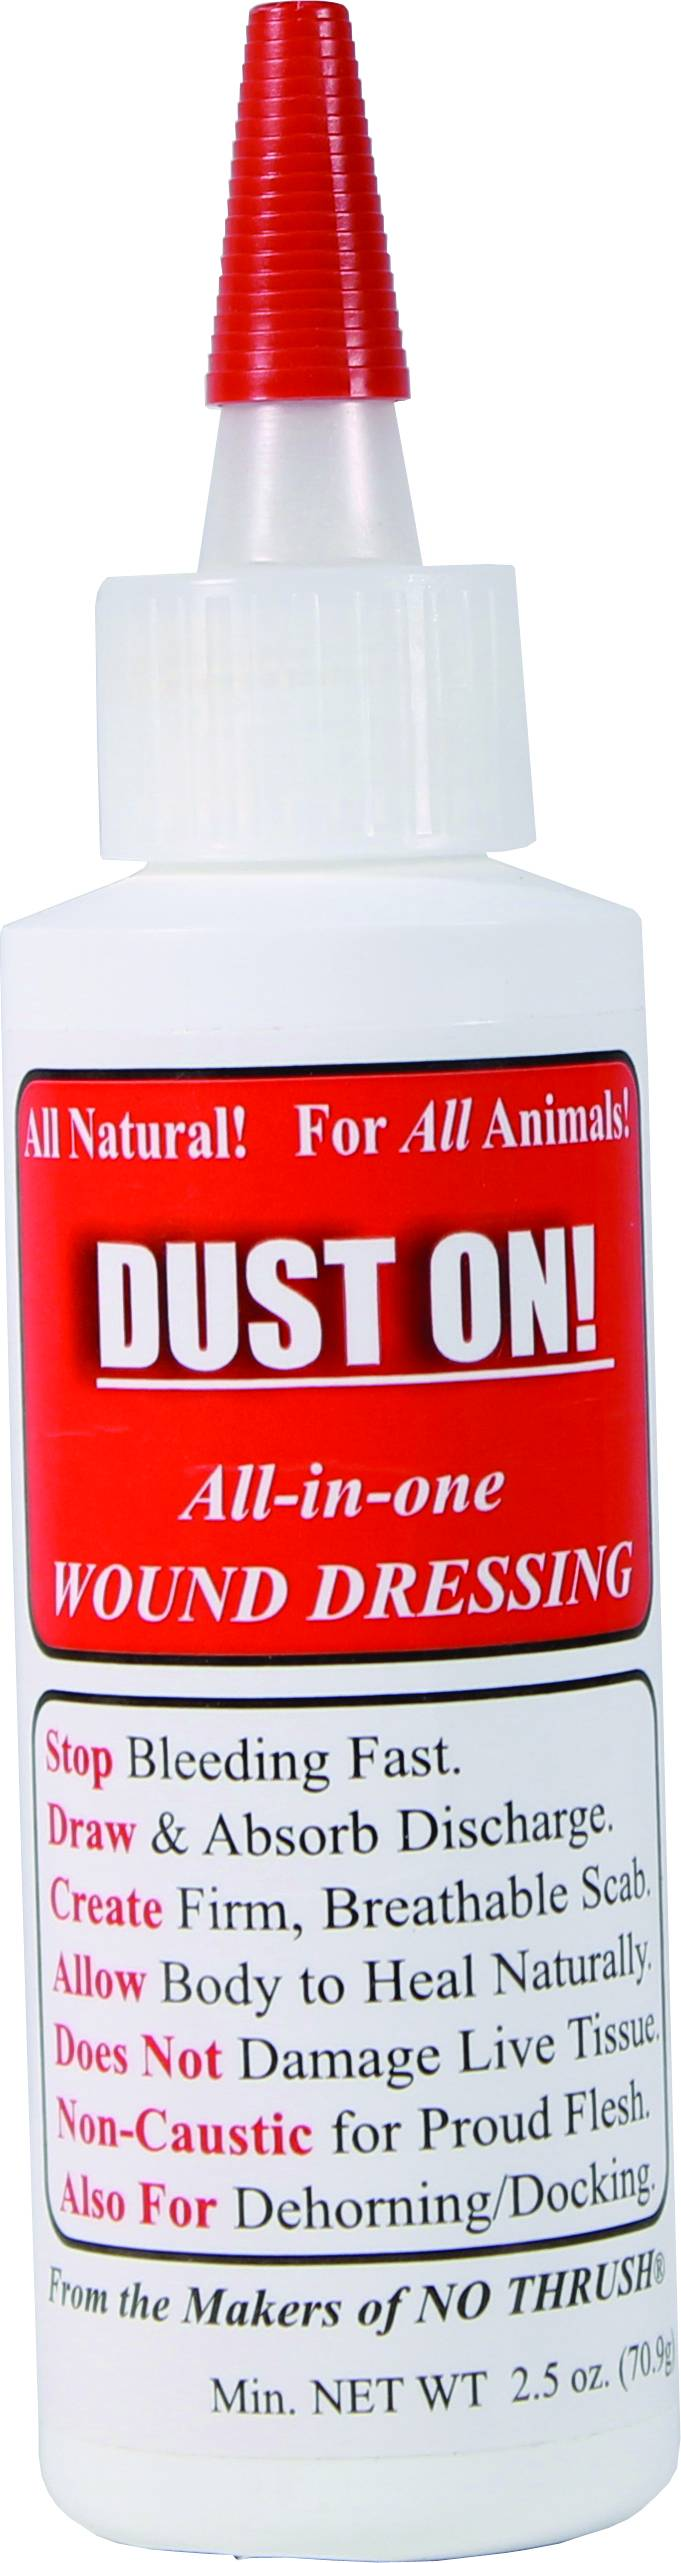 Dust-On All In One 100% Natural Wound Dressing